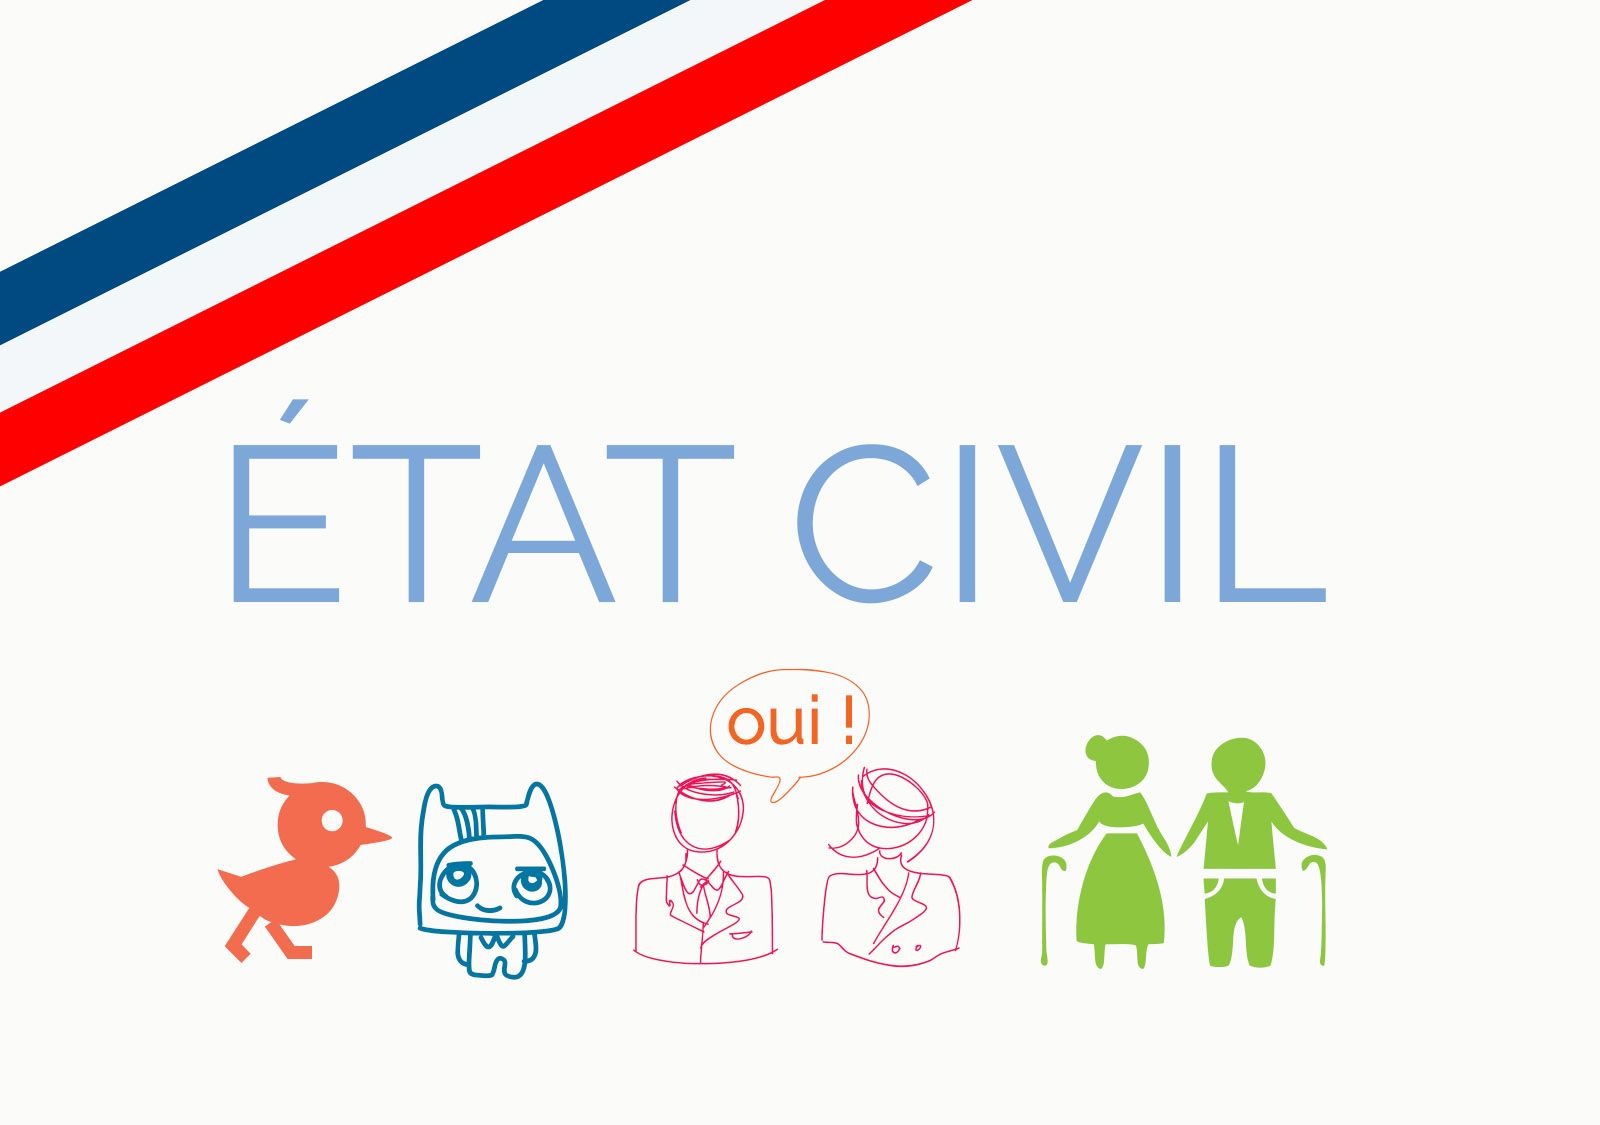 Etat civil - Mairie de guilherand granges etat civil ...